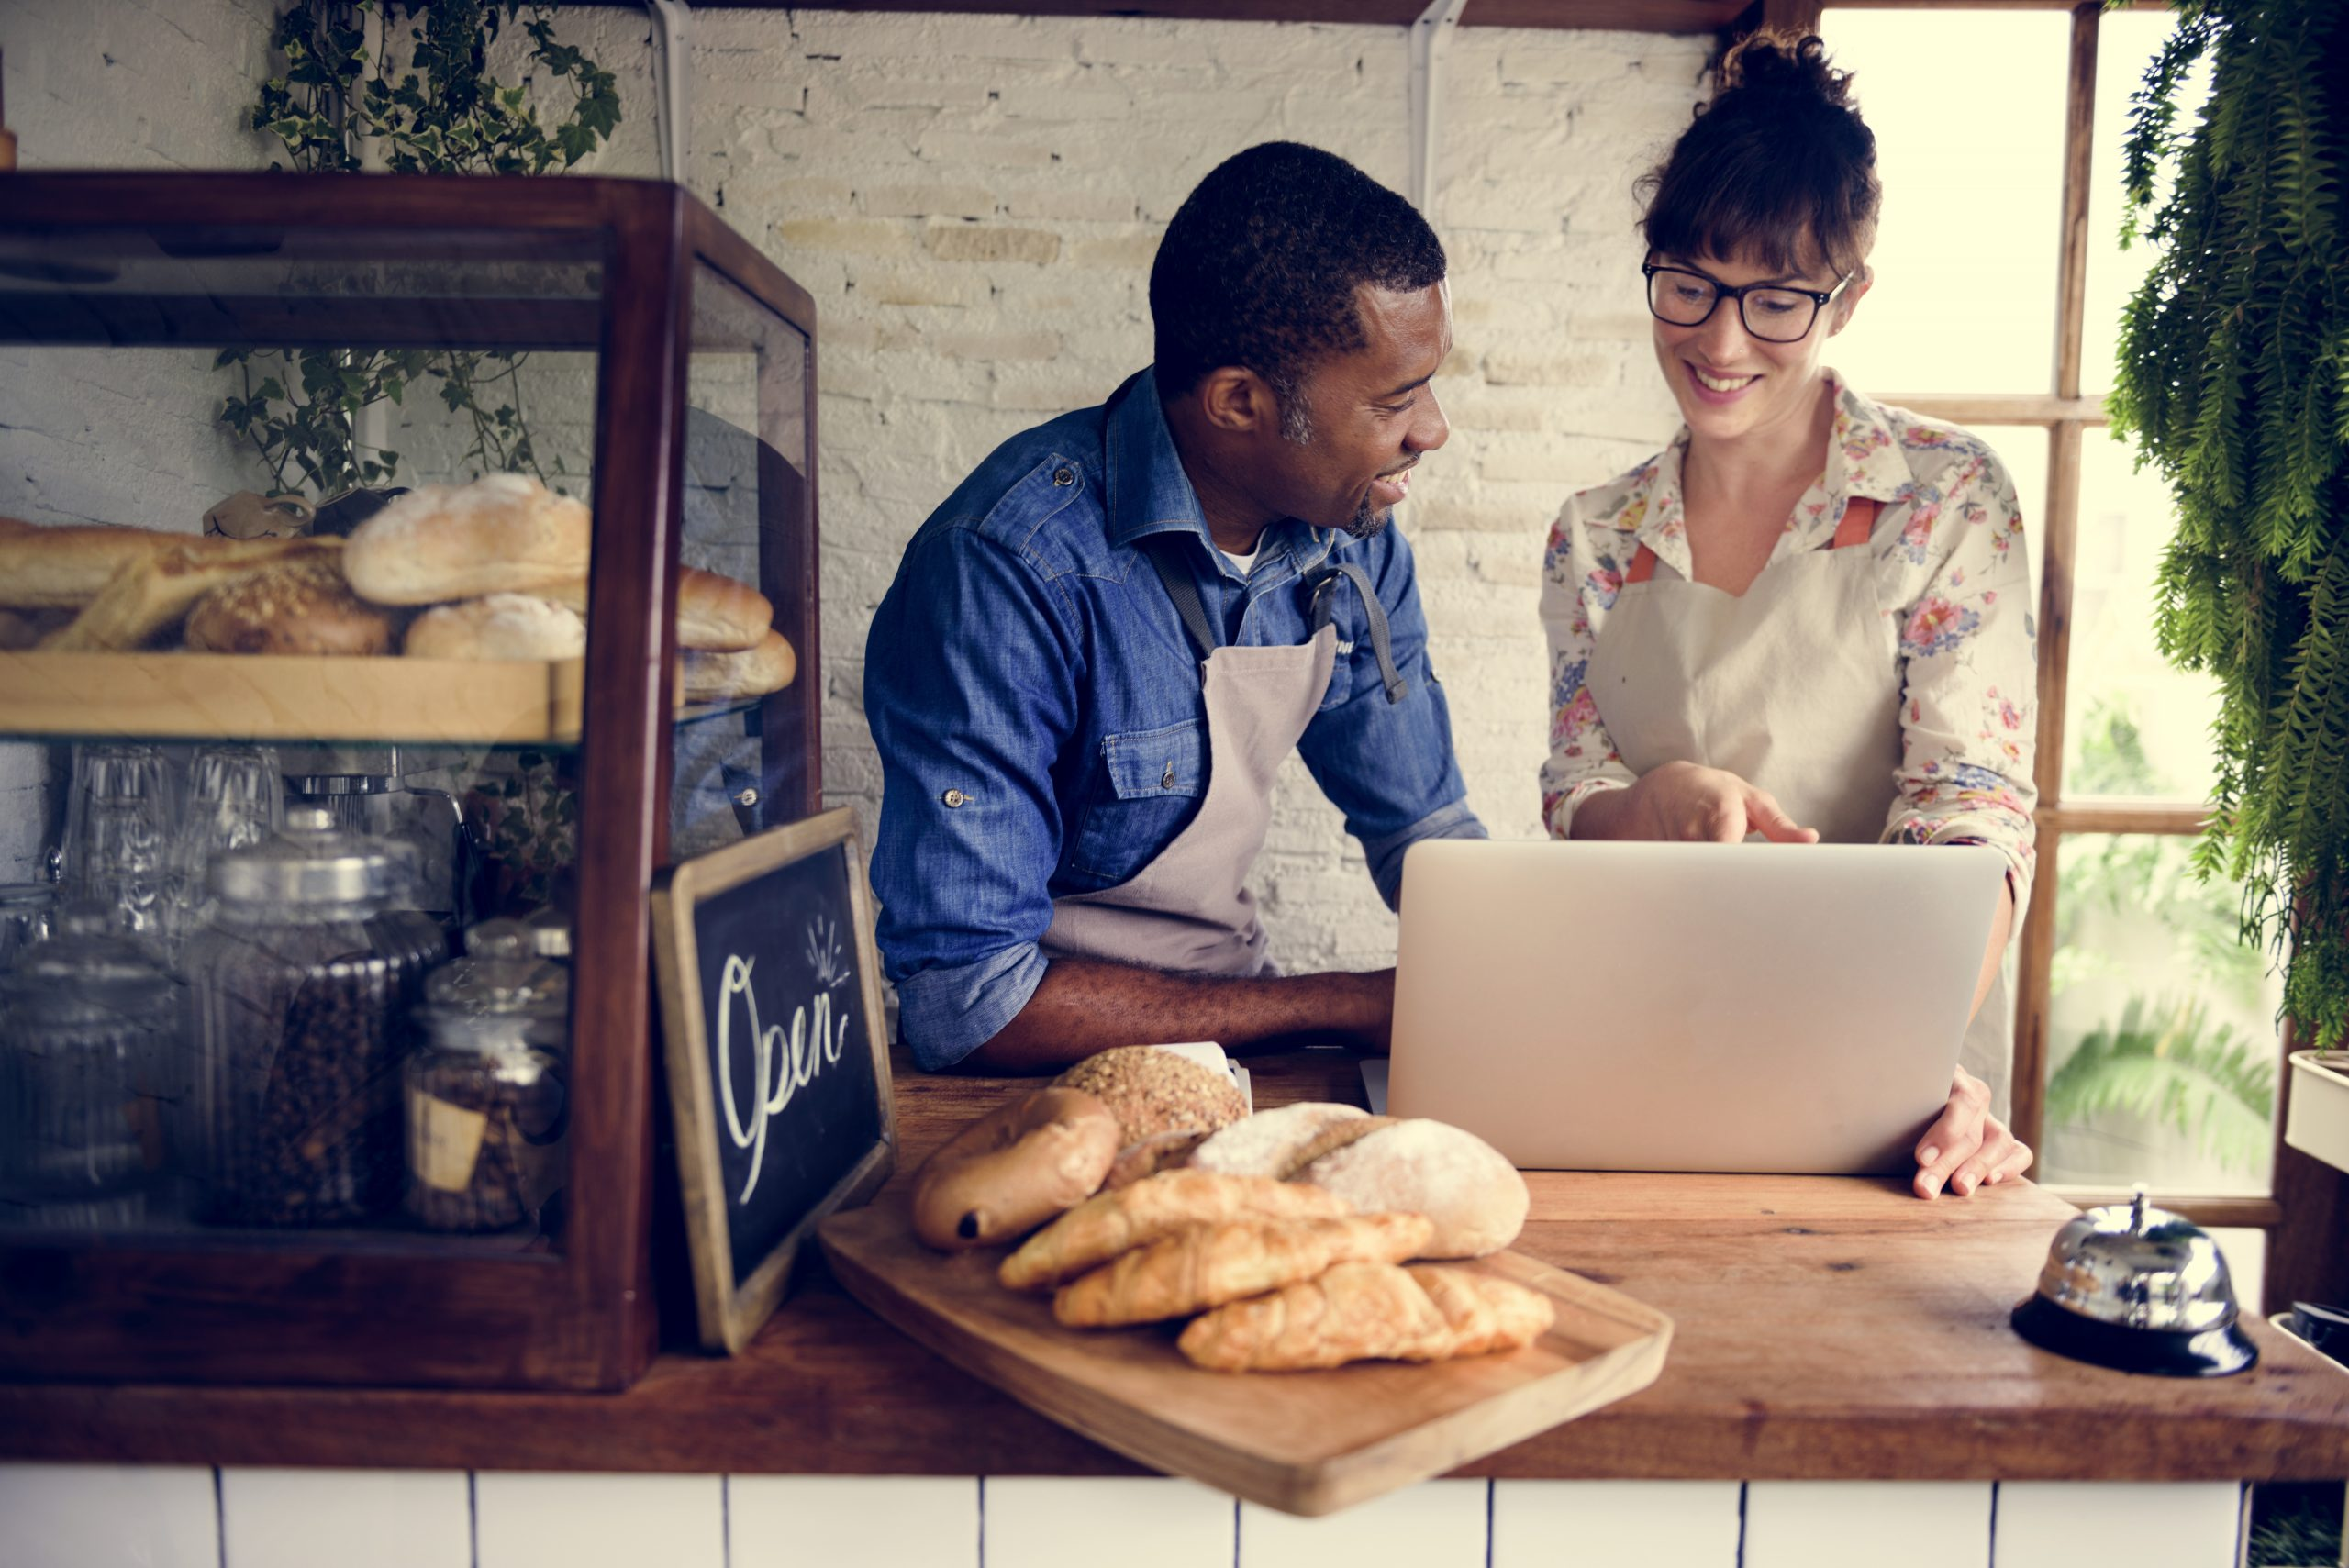 Buying a business. A happy business owner working in a bakery talking to a female customer.